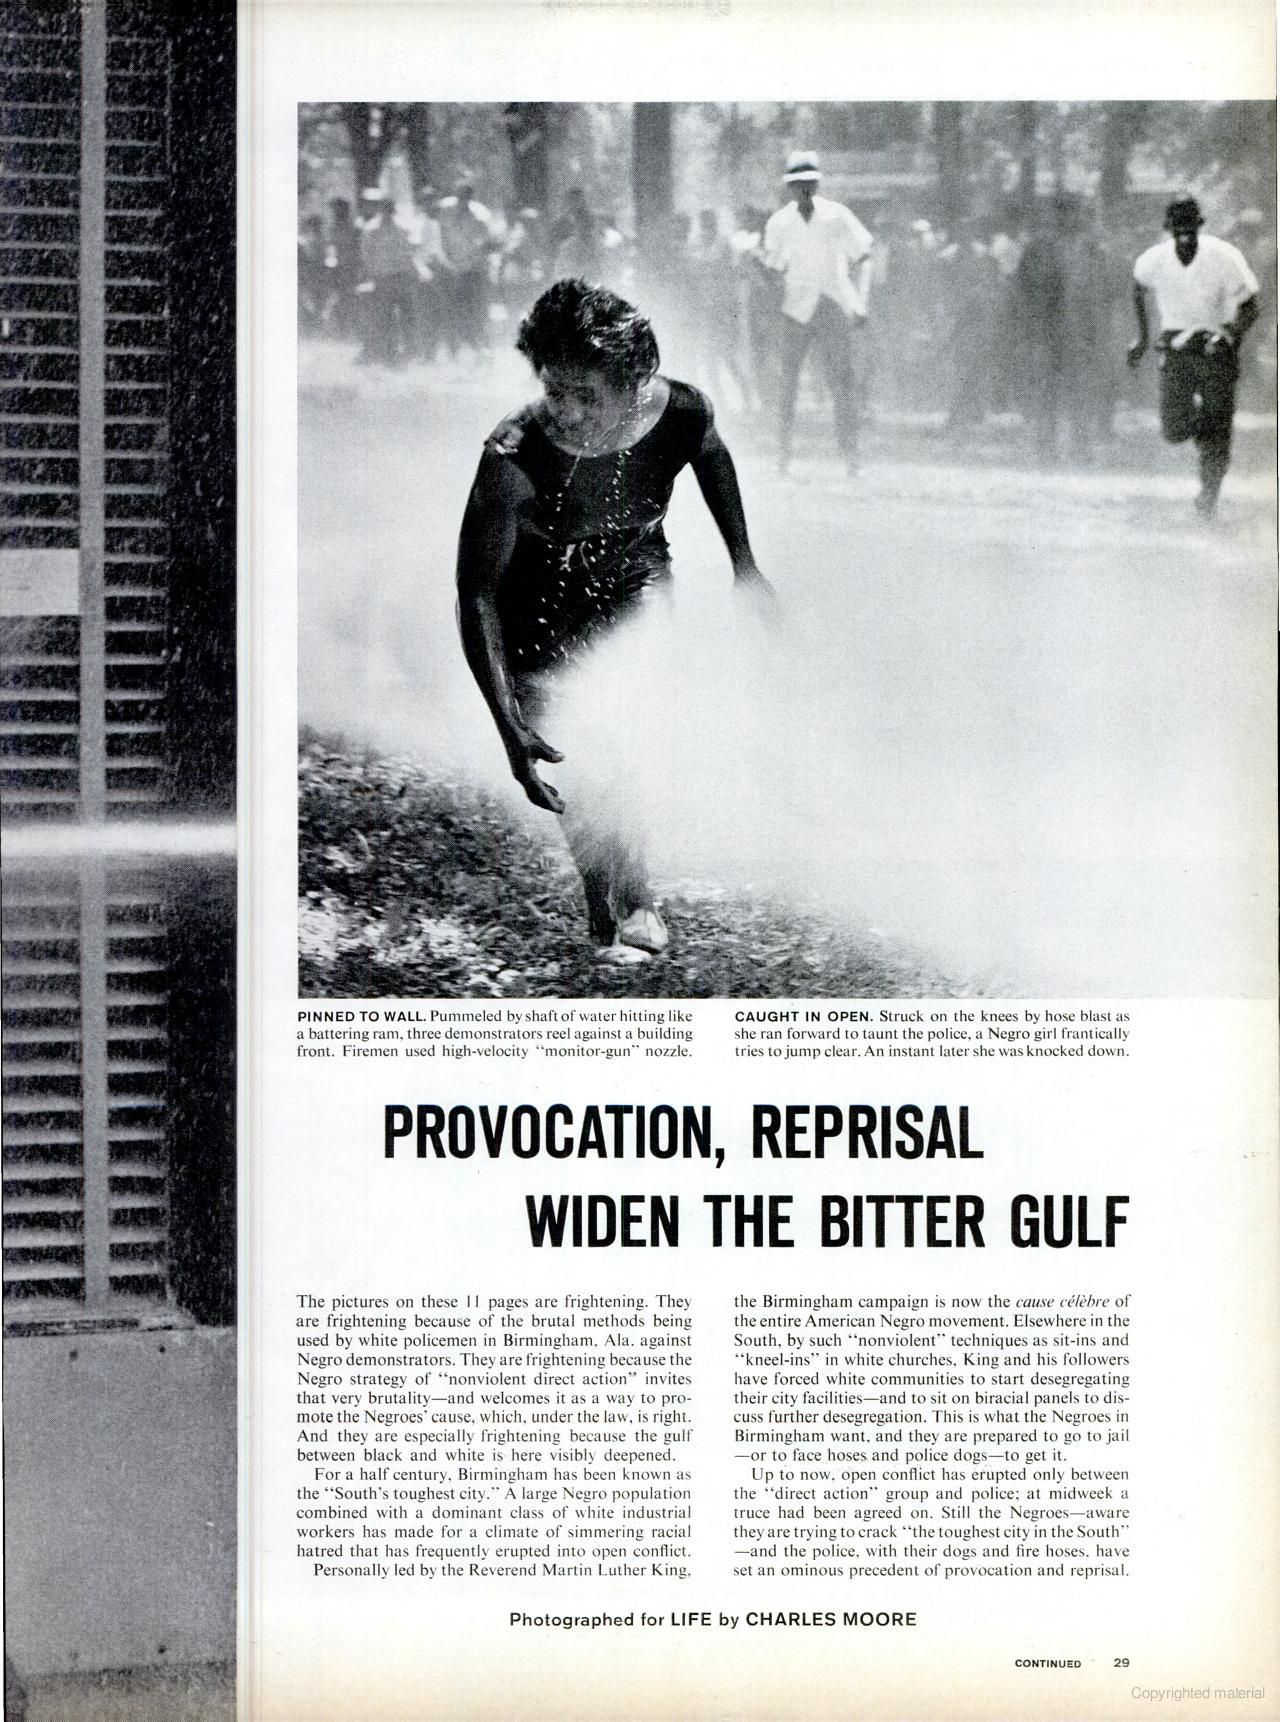 life magazine birmingham campaign in the us civil life magazine 17 1963 birmingham campaign in the us civil rights movement photo